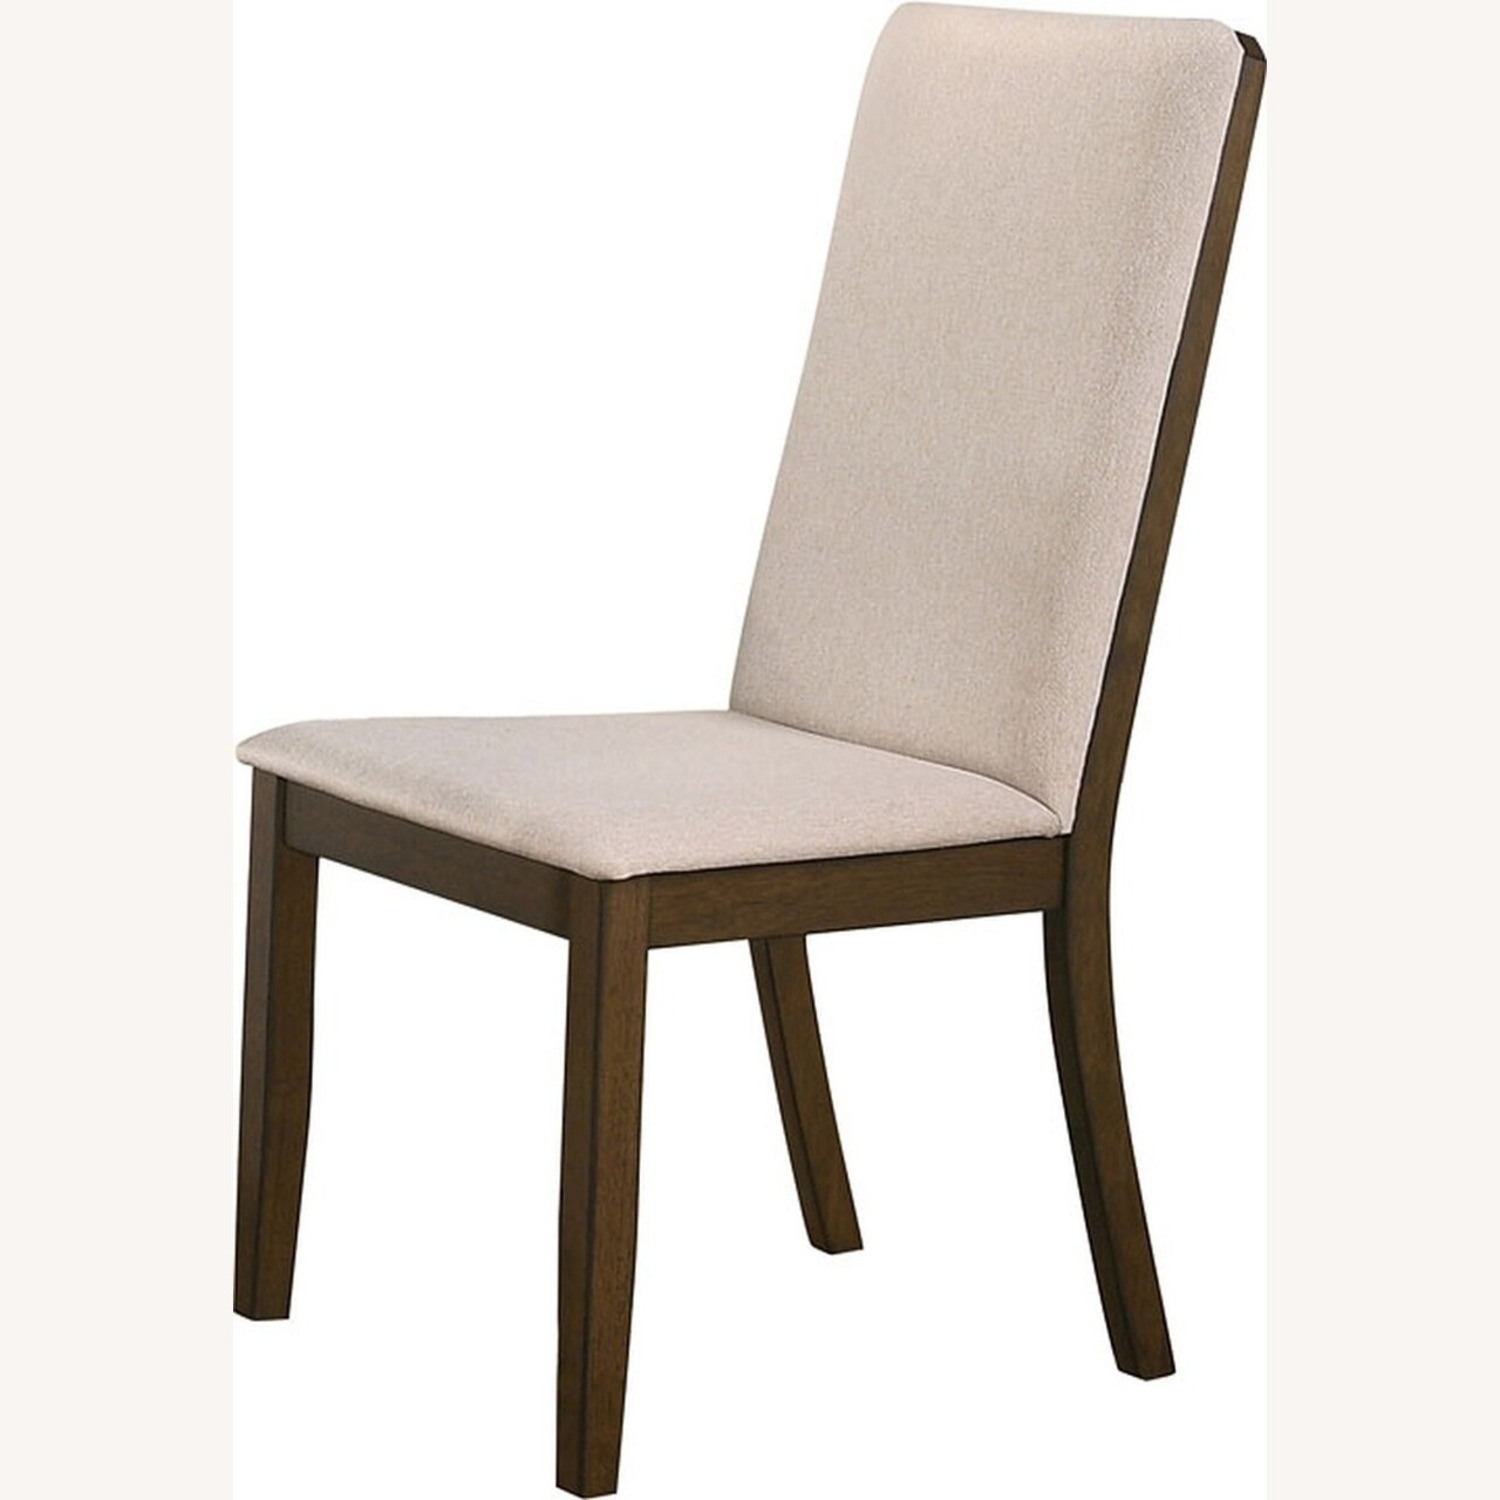 Transitional Side Chair In Latte Fabric - image-1